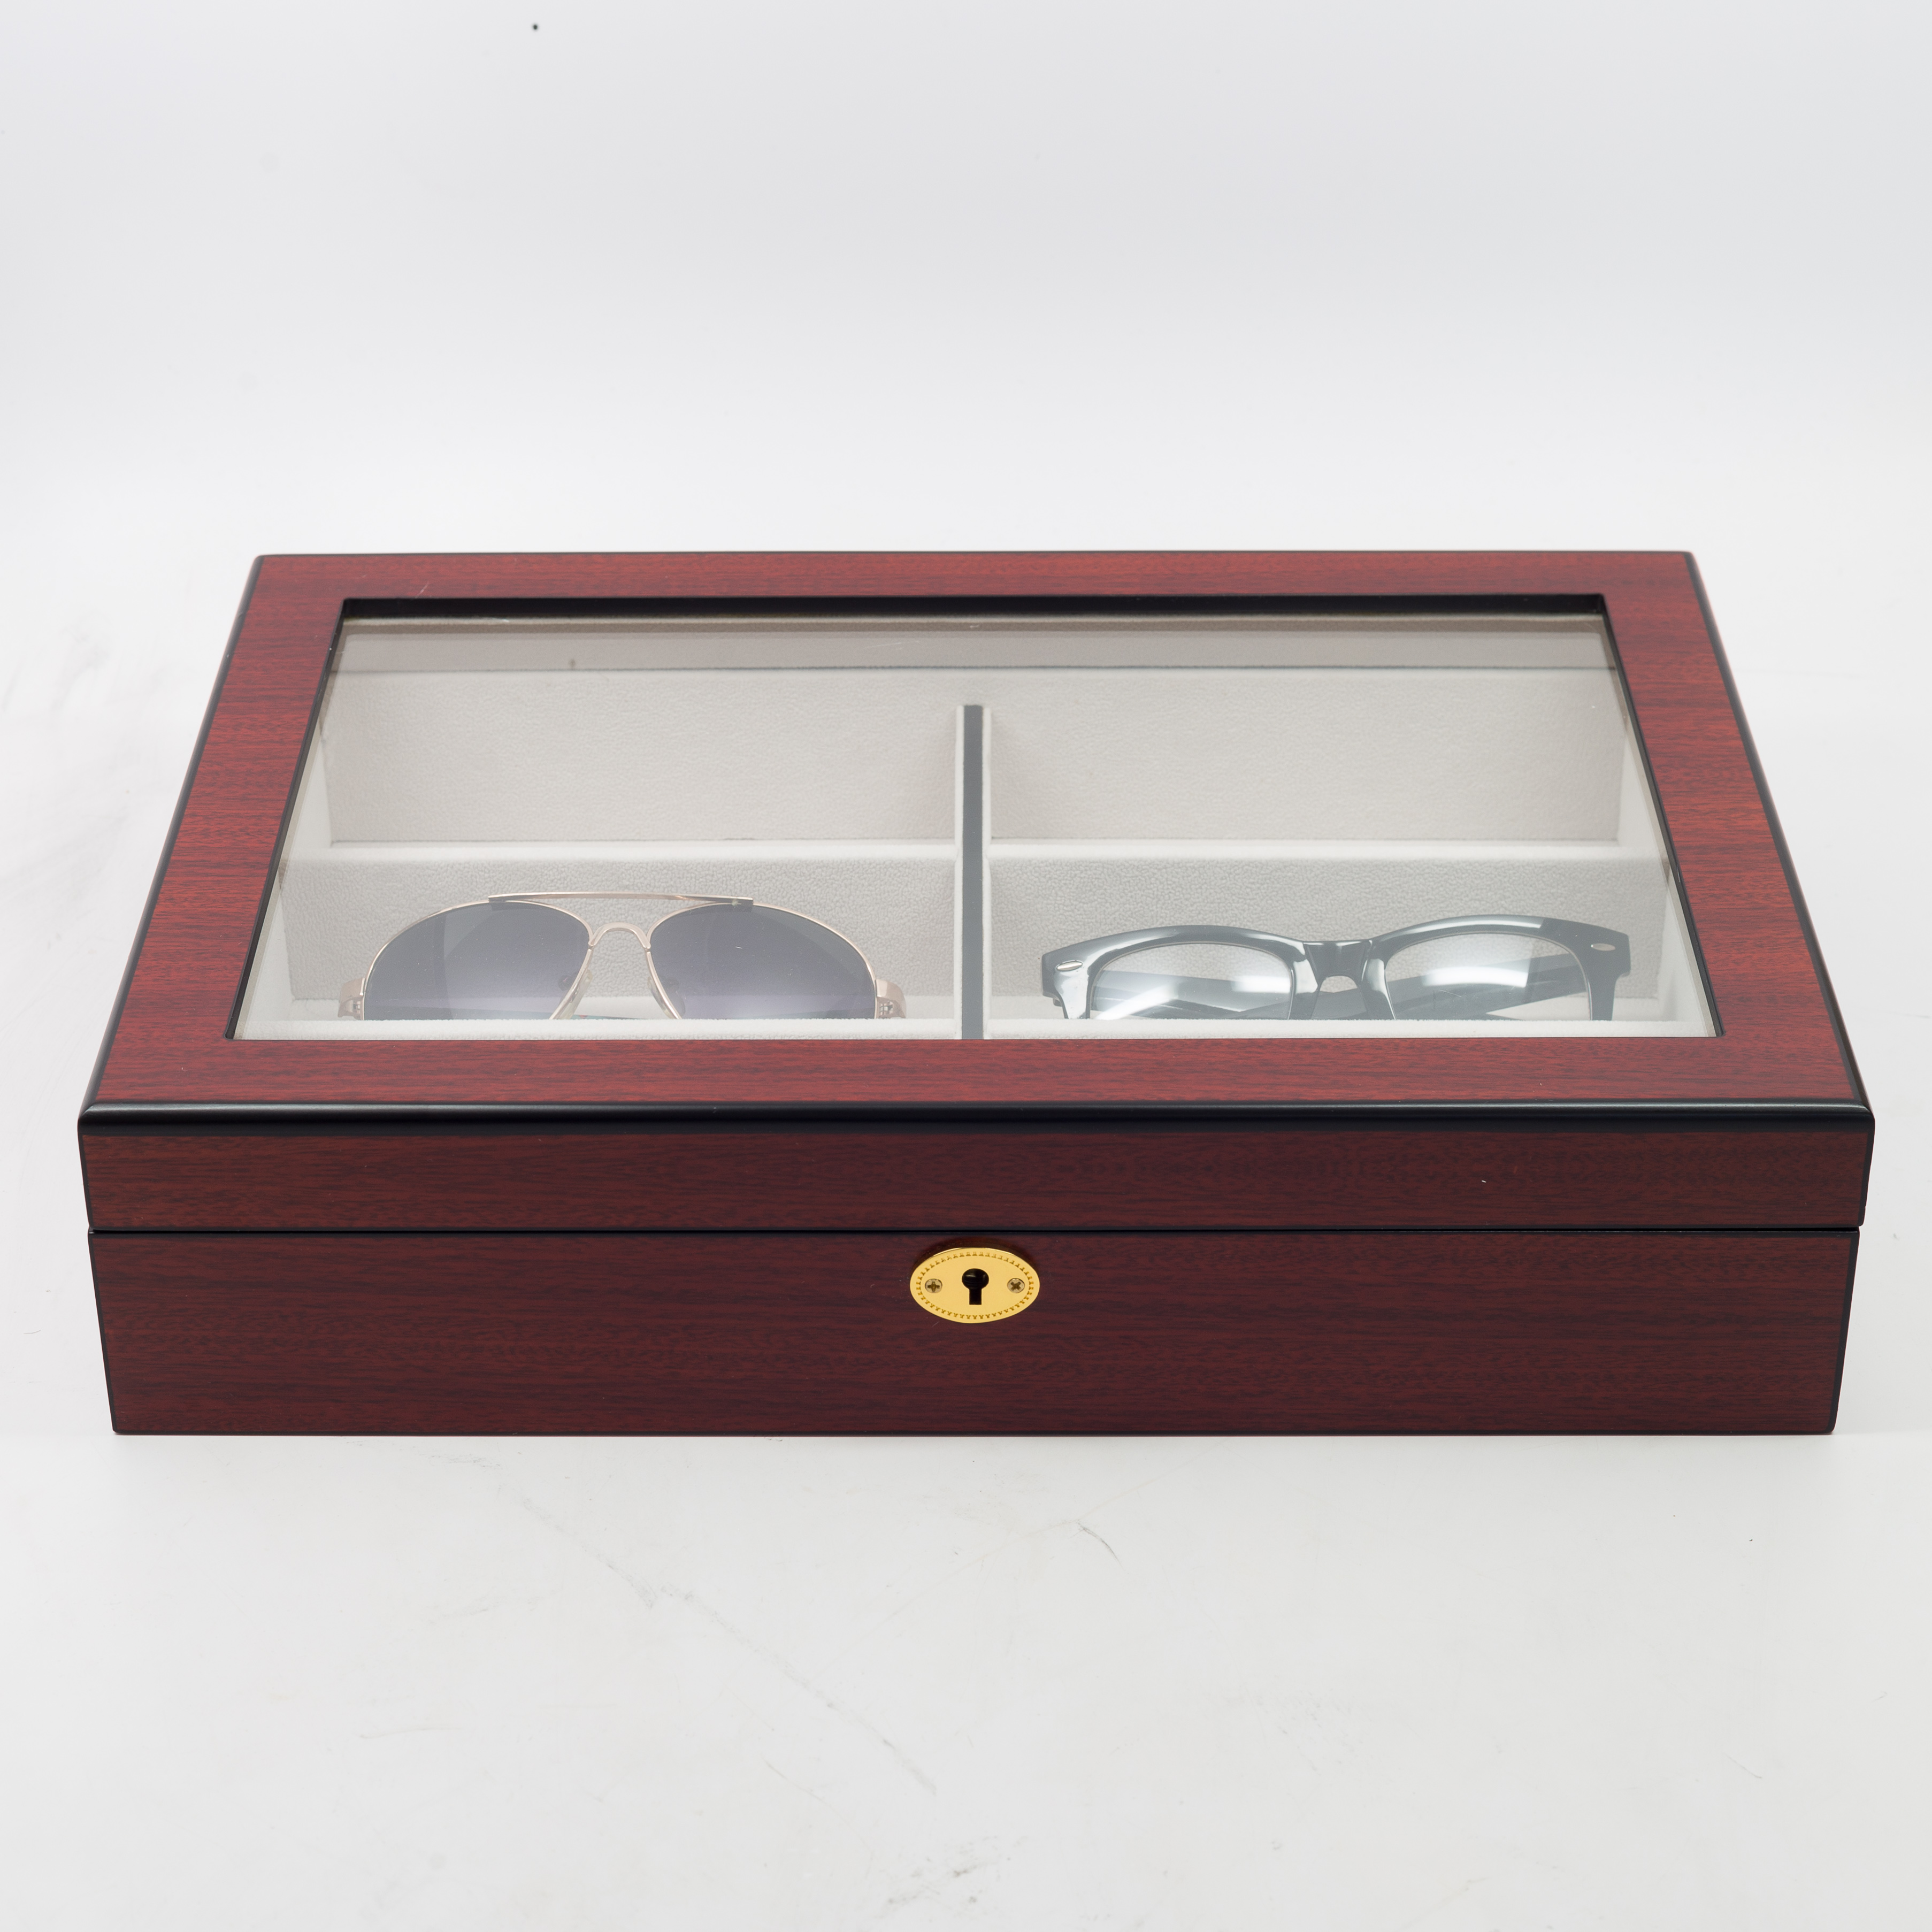 48999a94193 Details about 6 CHERRY WOOD EYEGLASS SUNGLASS OVERSIZED GLASSES STORAGE  DISPLAY CASE ORGANIZER